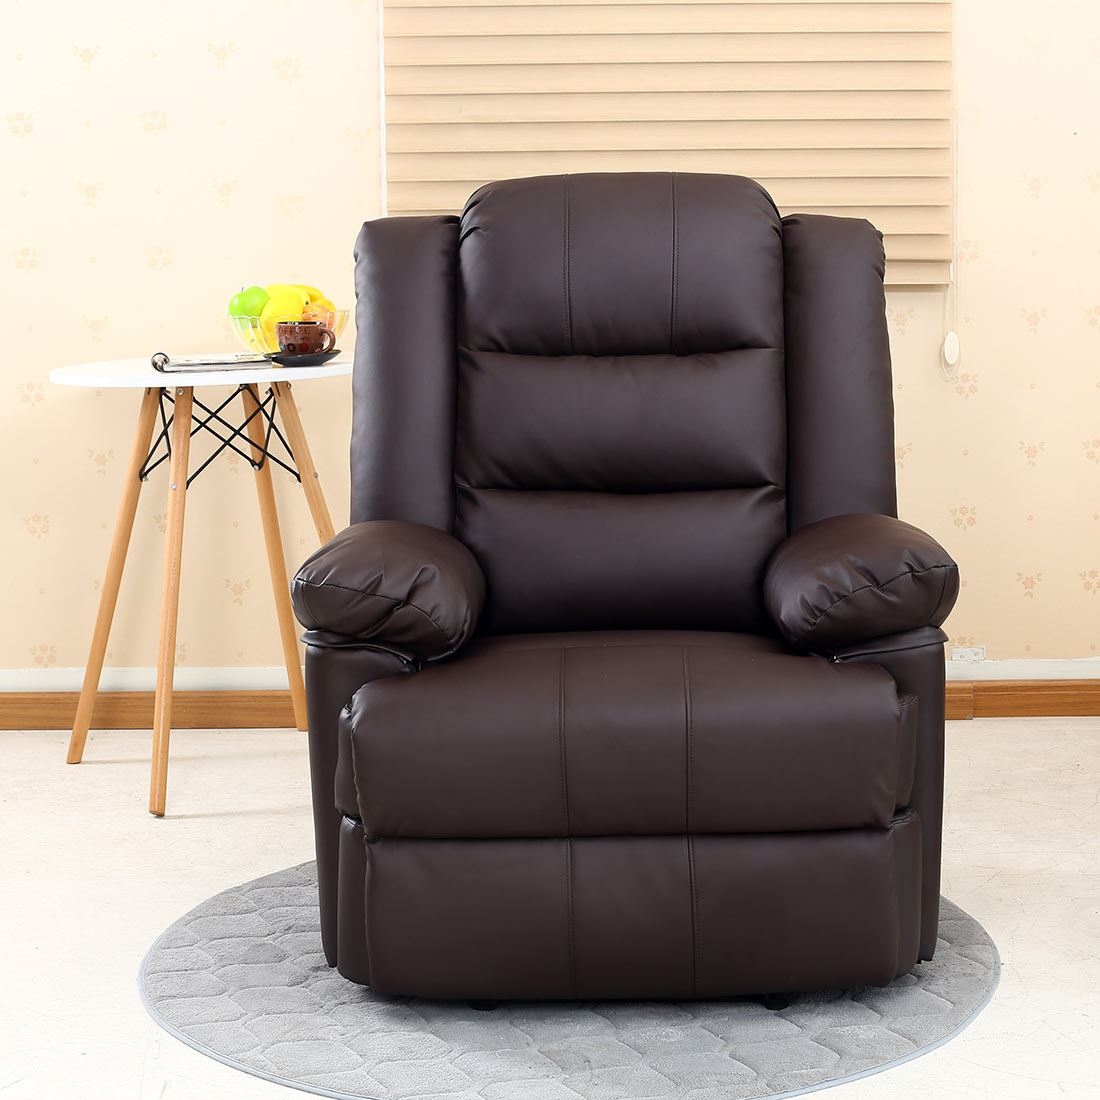 loxley leather recliner armchair sofa home lounge chair reclining